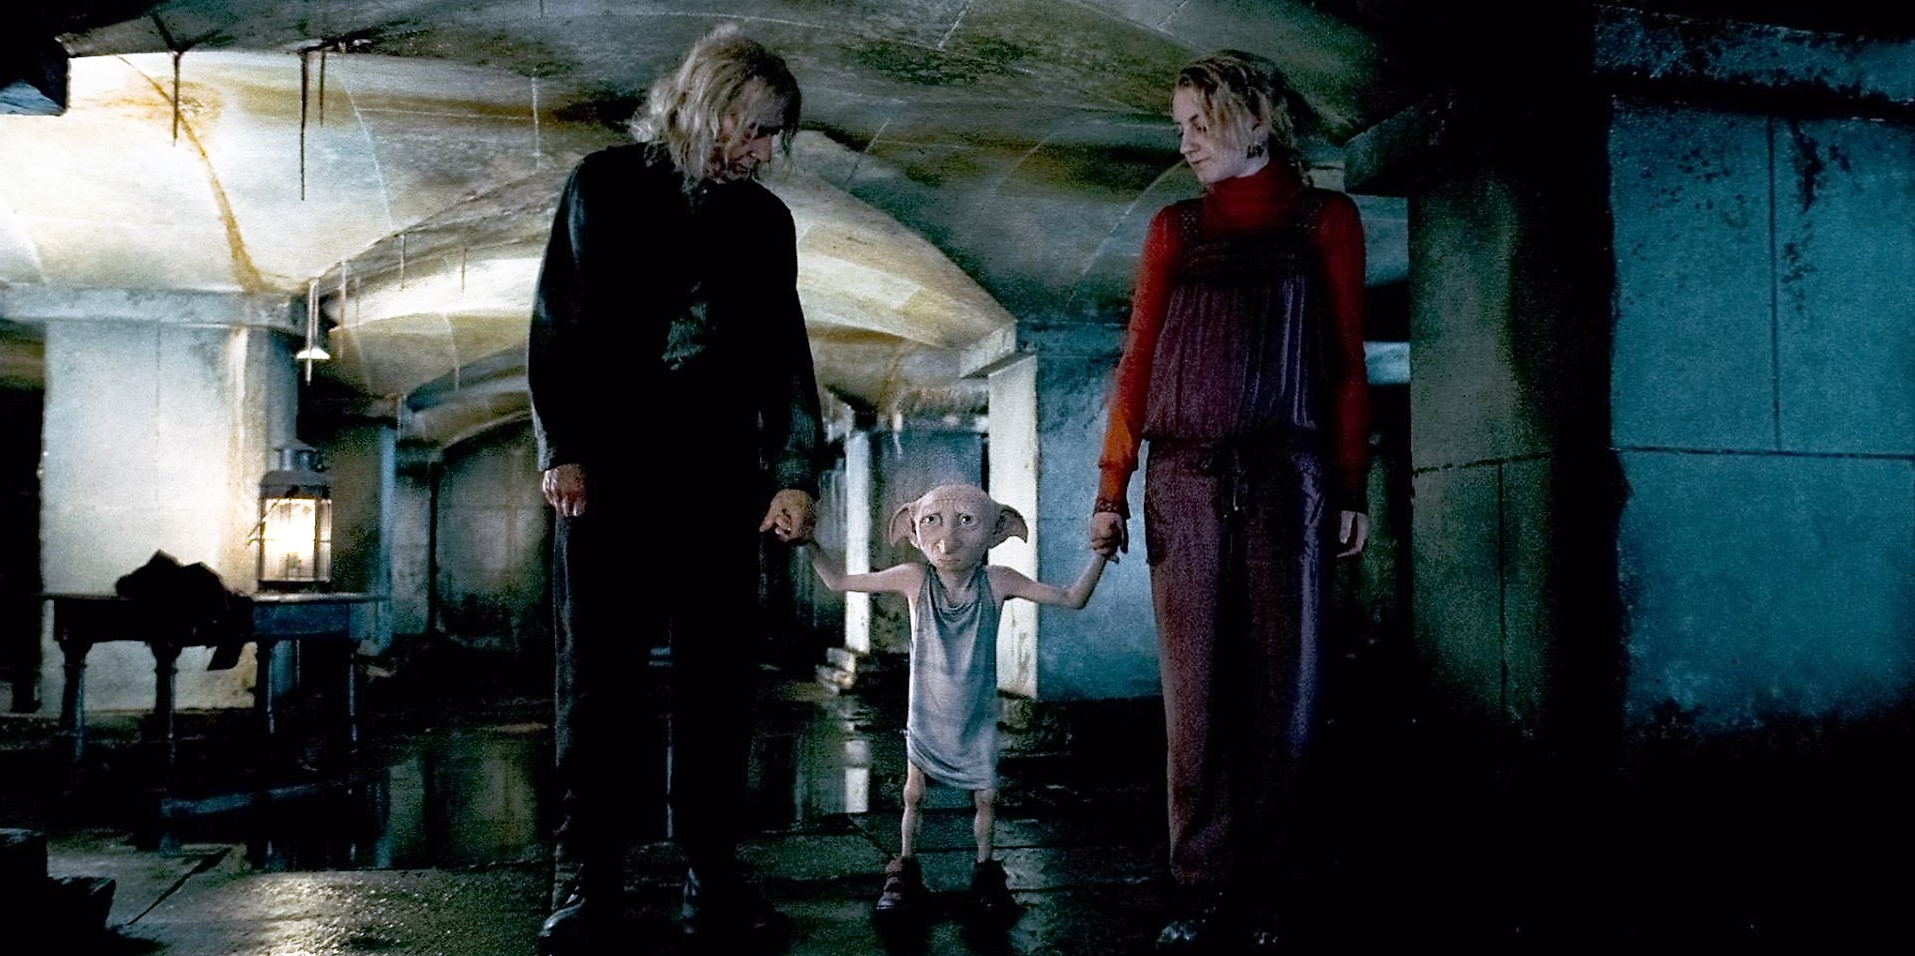 06 Dobby rescuing Mr. Ollivander and Luna Lovegood.jpg